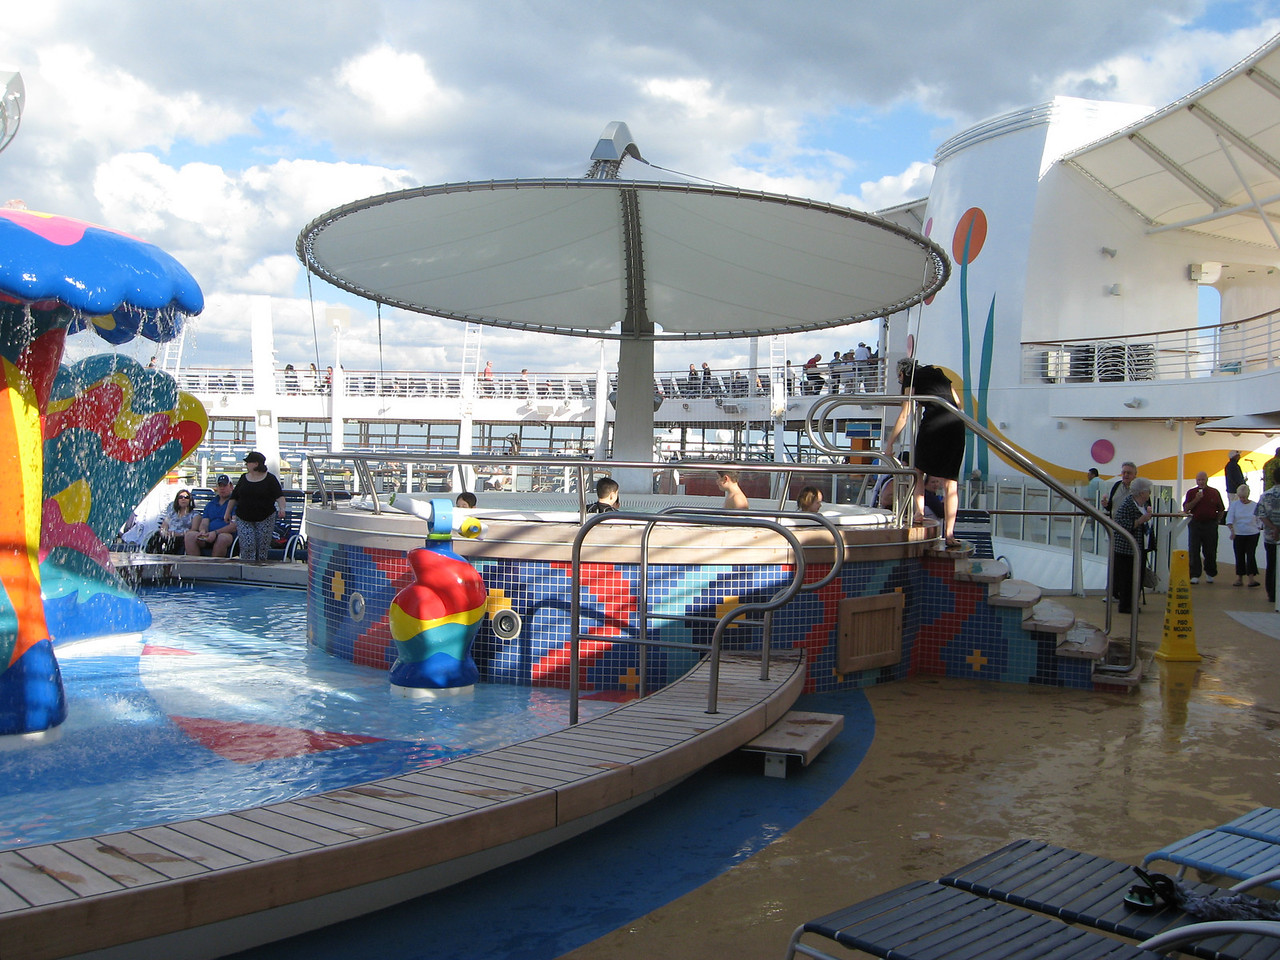 Children's water park, Deck 16